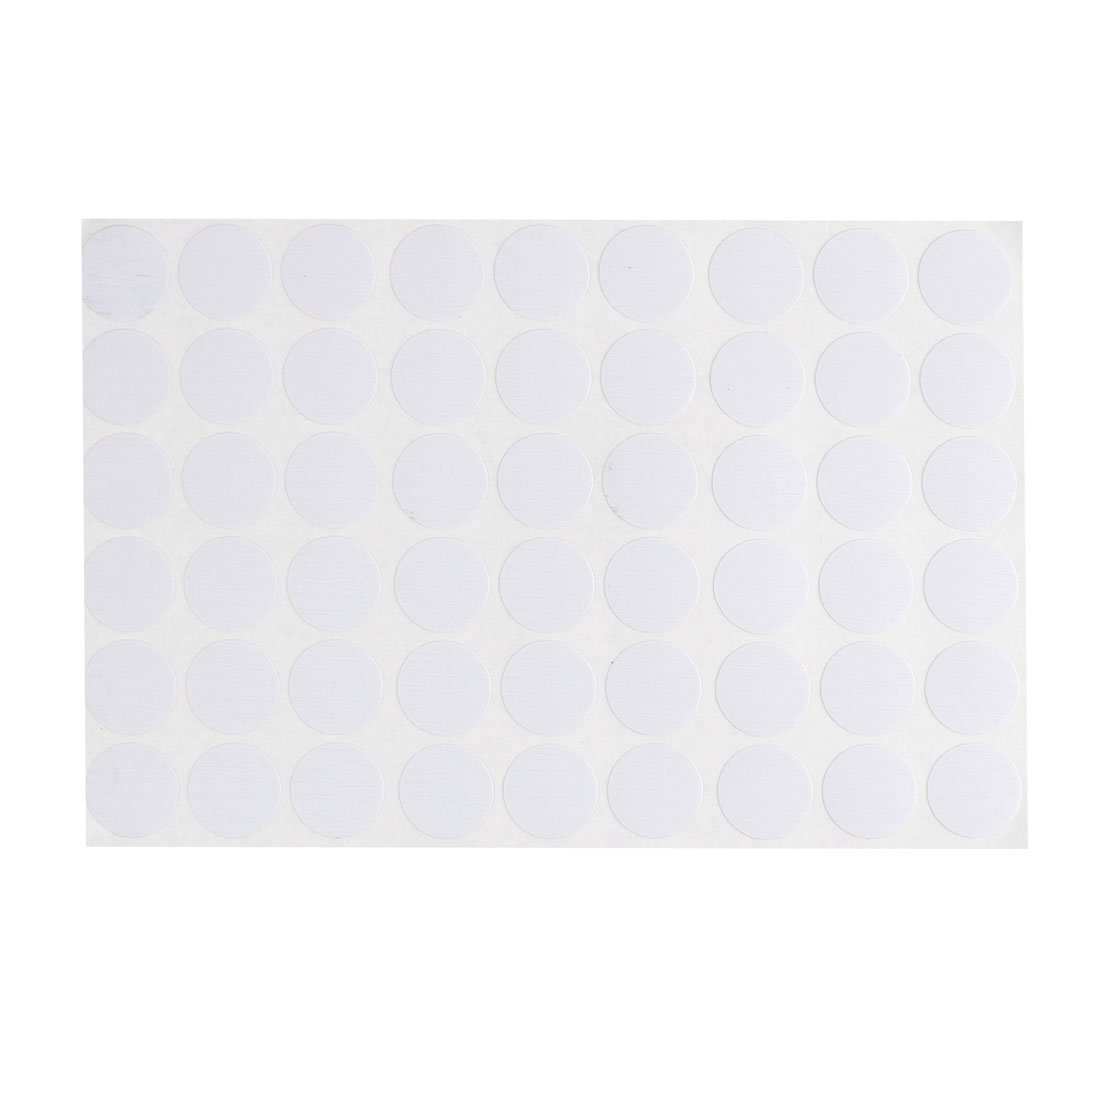 uxcell Desk Table Self-Adhesive 21mm Screw Hole Covers Stickers 54 in 1 White a15112300ux1173